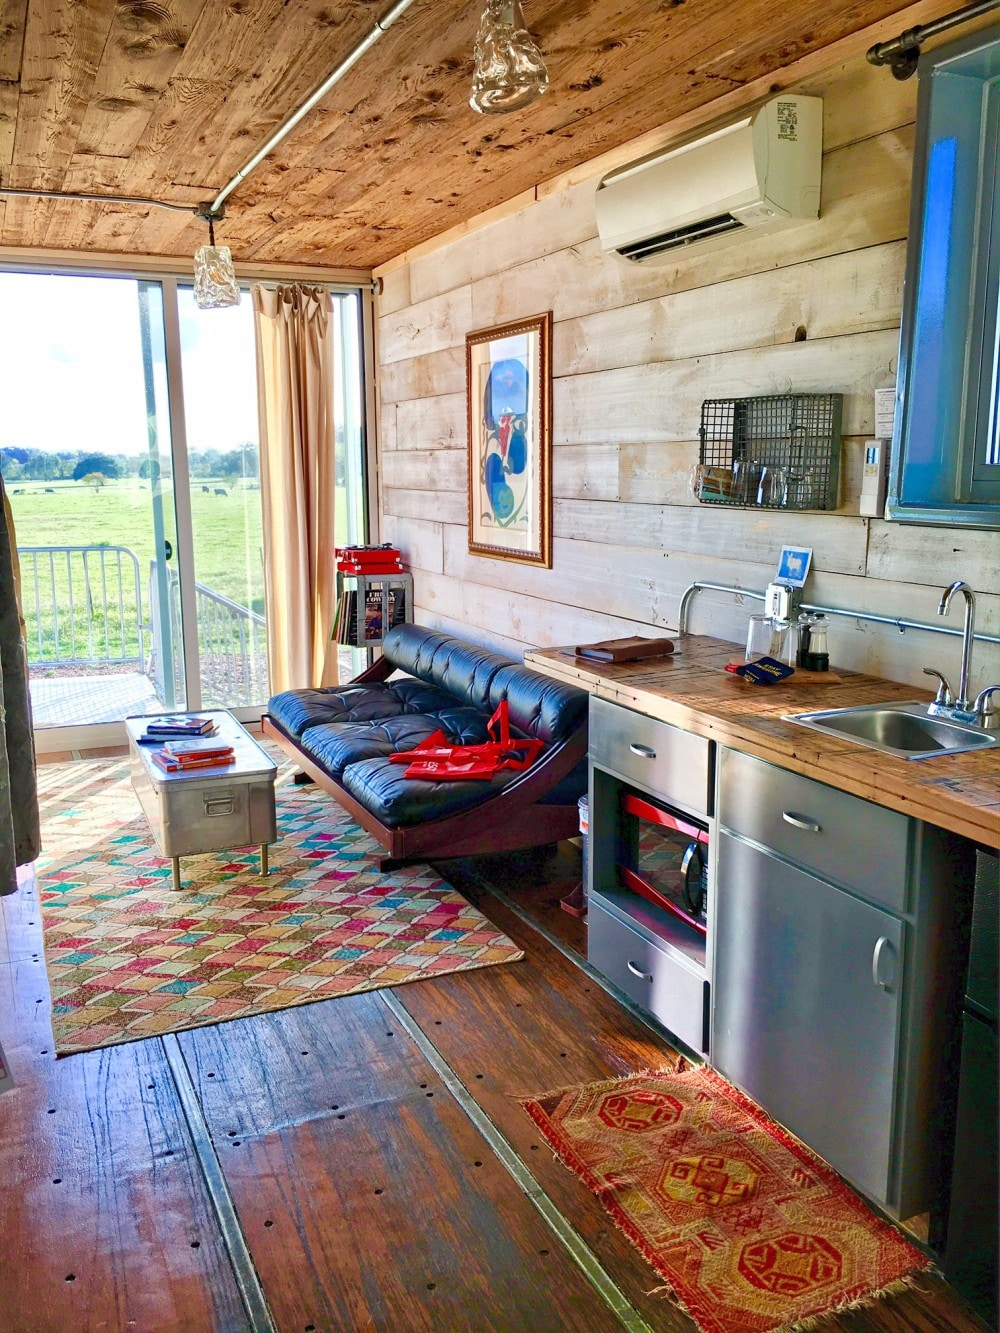 Houze V   Flophouze Shipping Container Hotel   Houses For Rent In Round  Top, Texas, United States